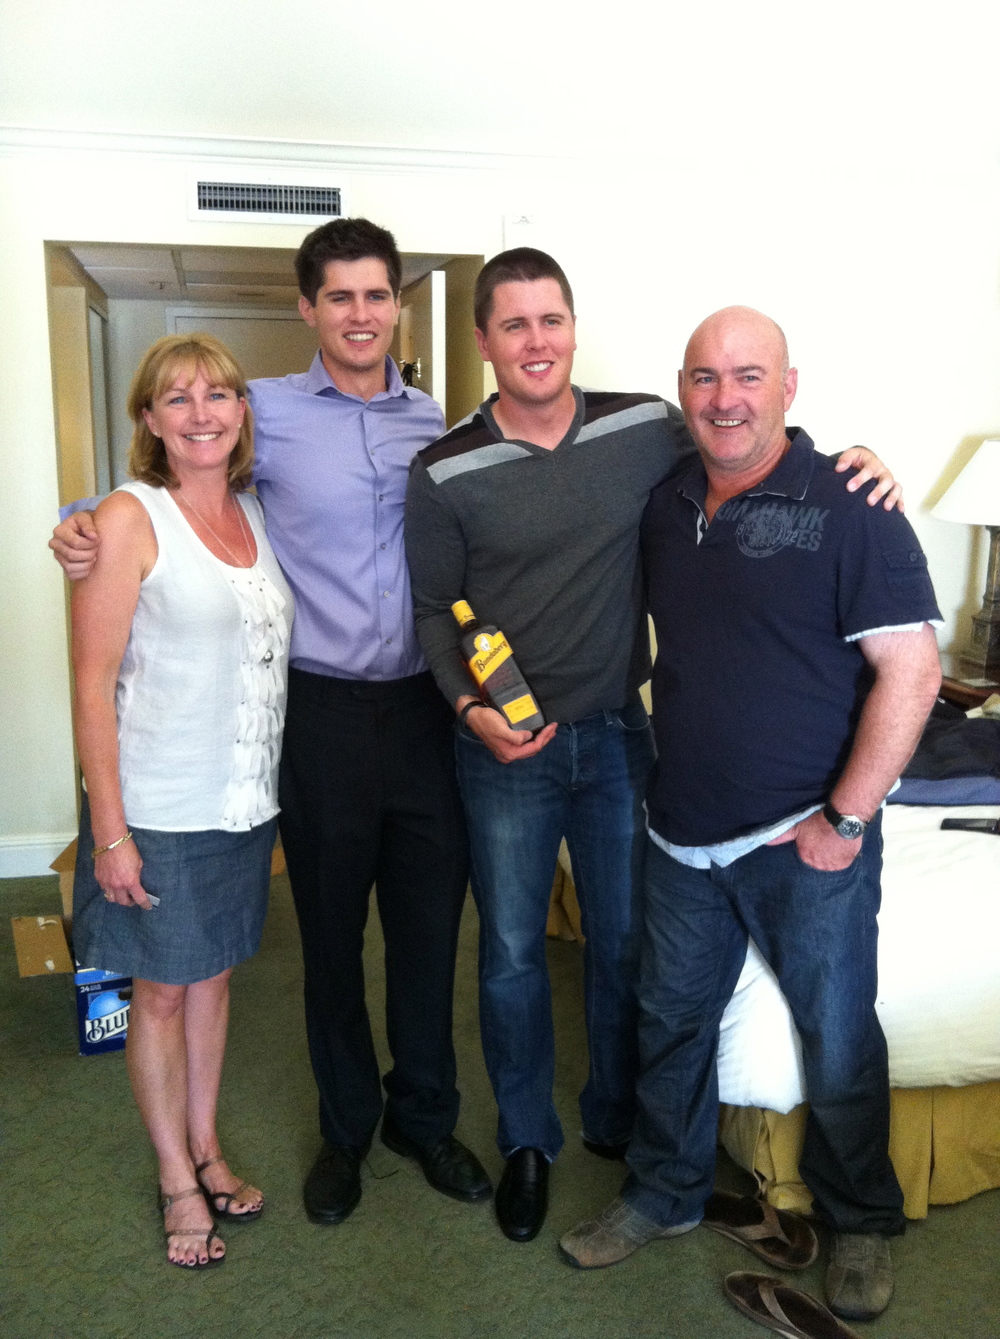 Cat's brother Brad with wife Anne with Paul and Chris.